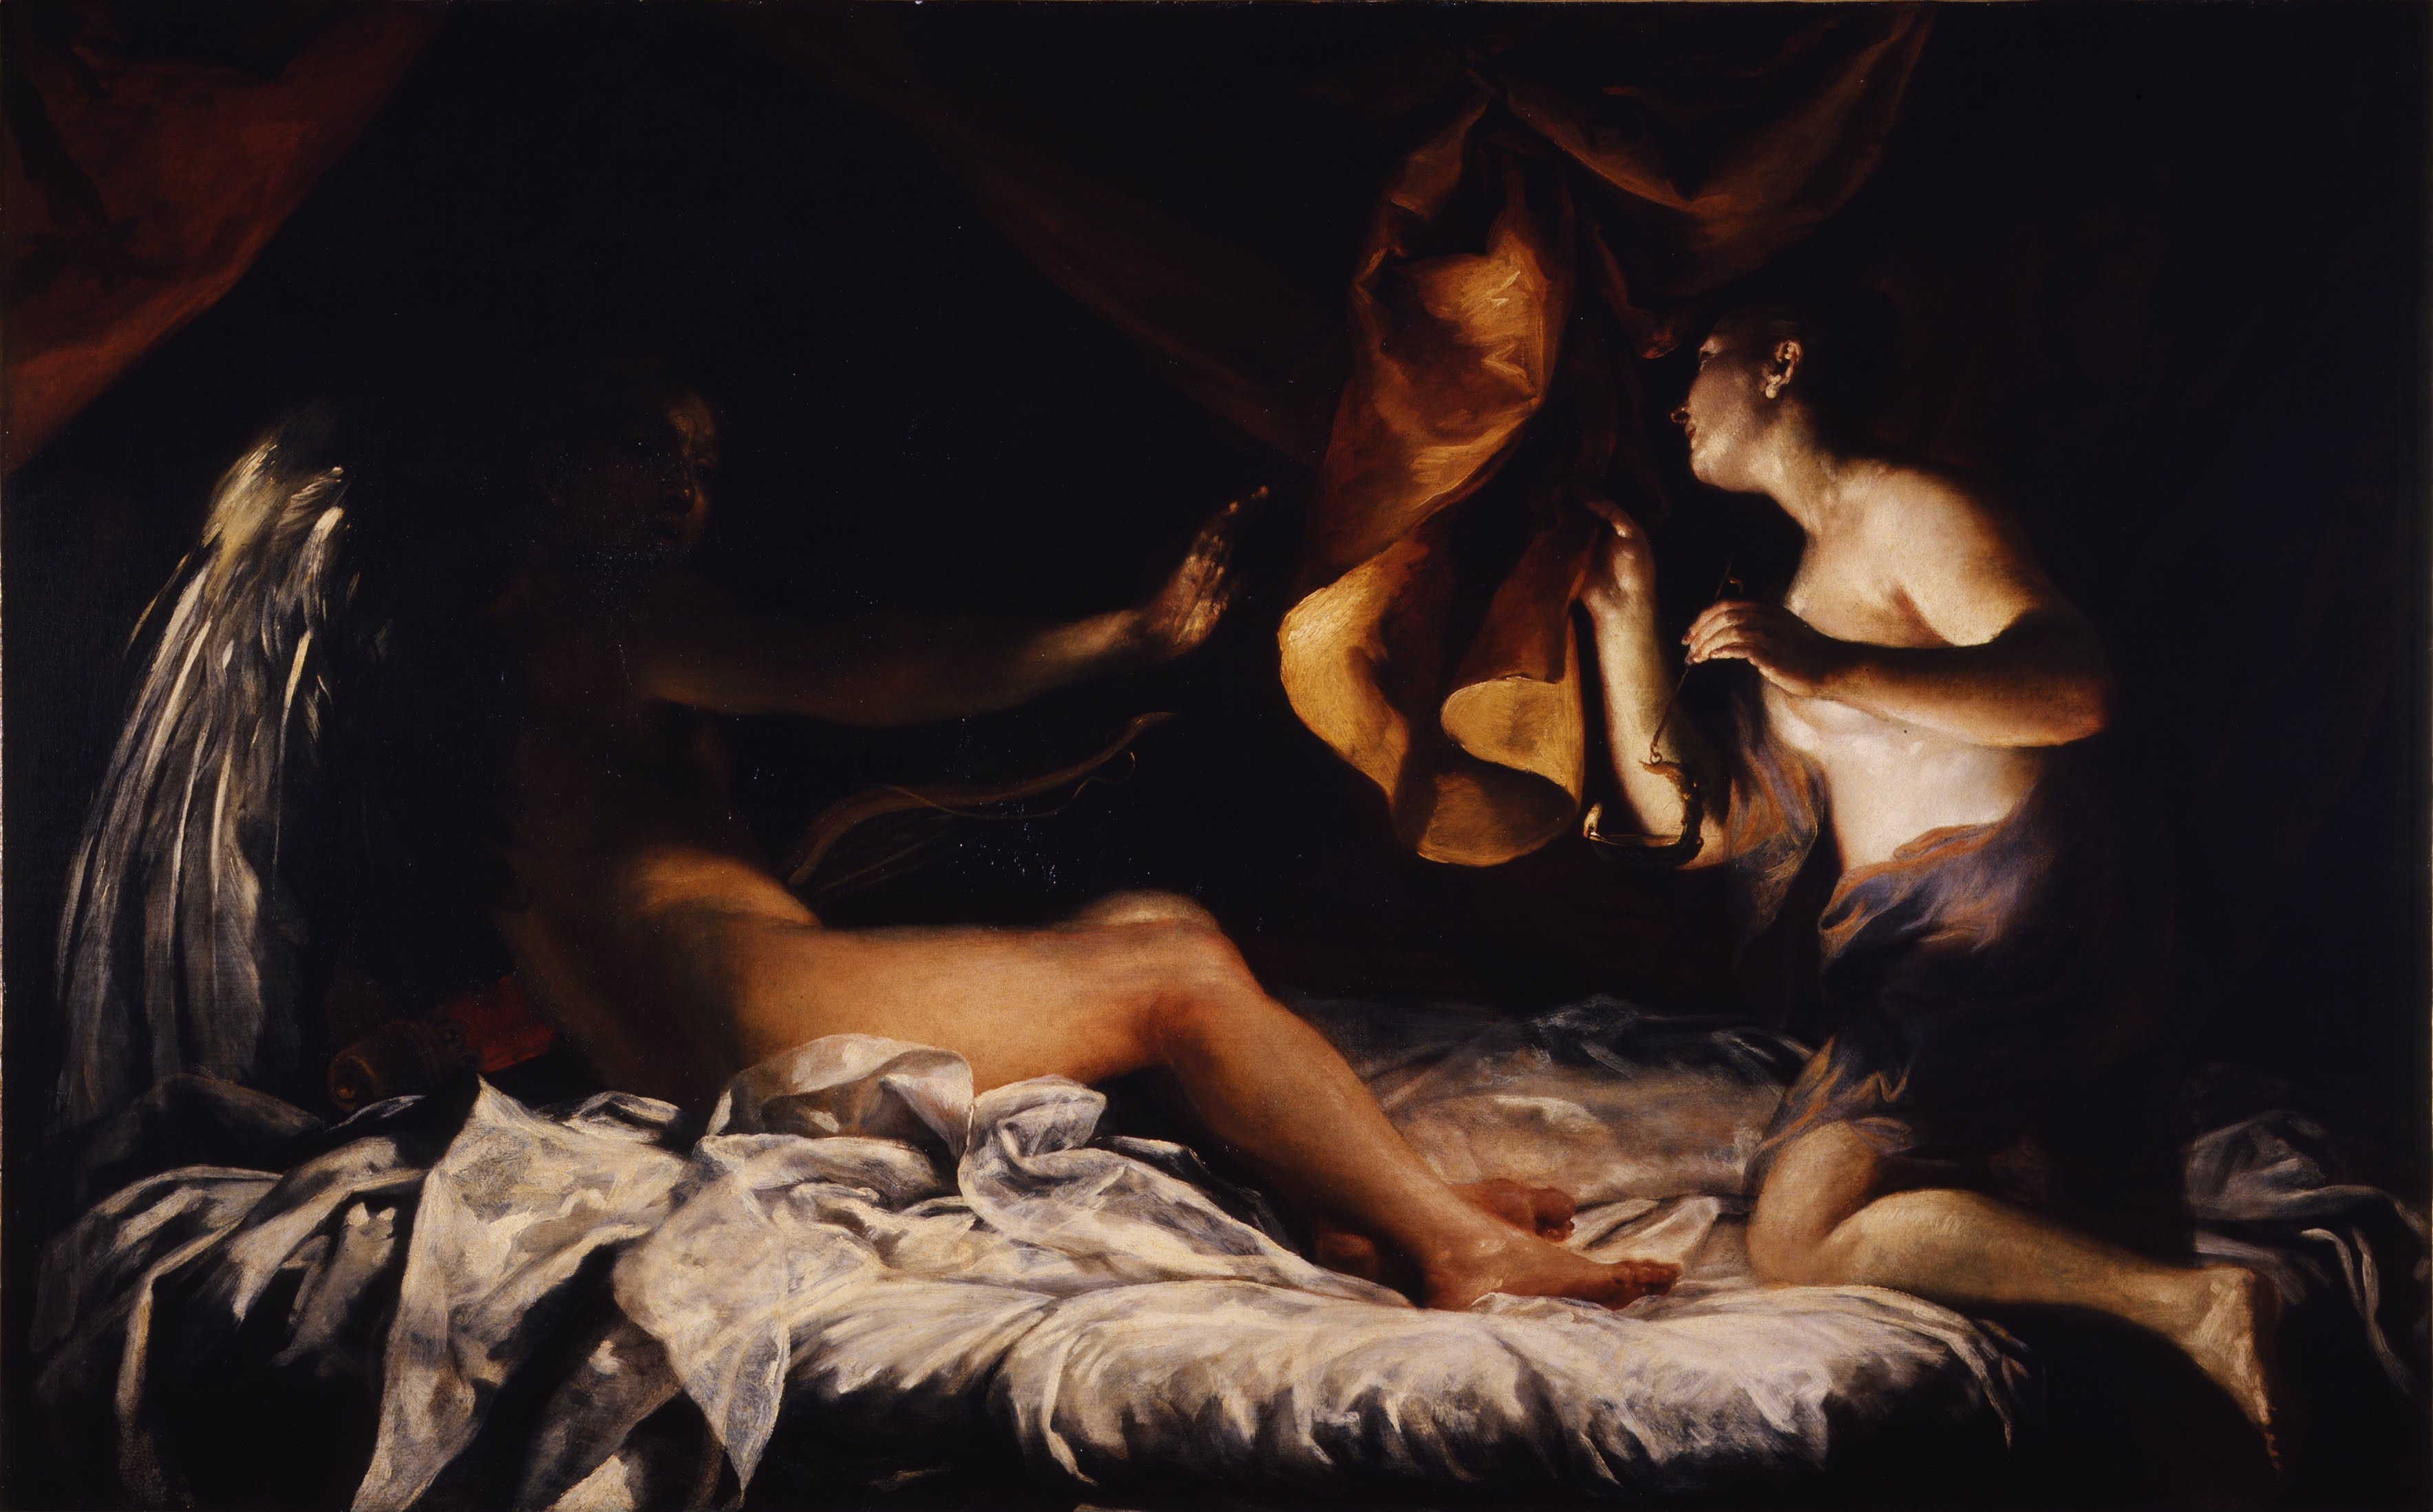 Cupid and Psyche (Giuseppe Maria Crespi)